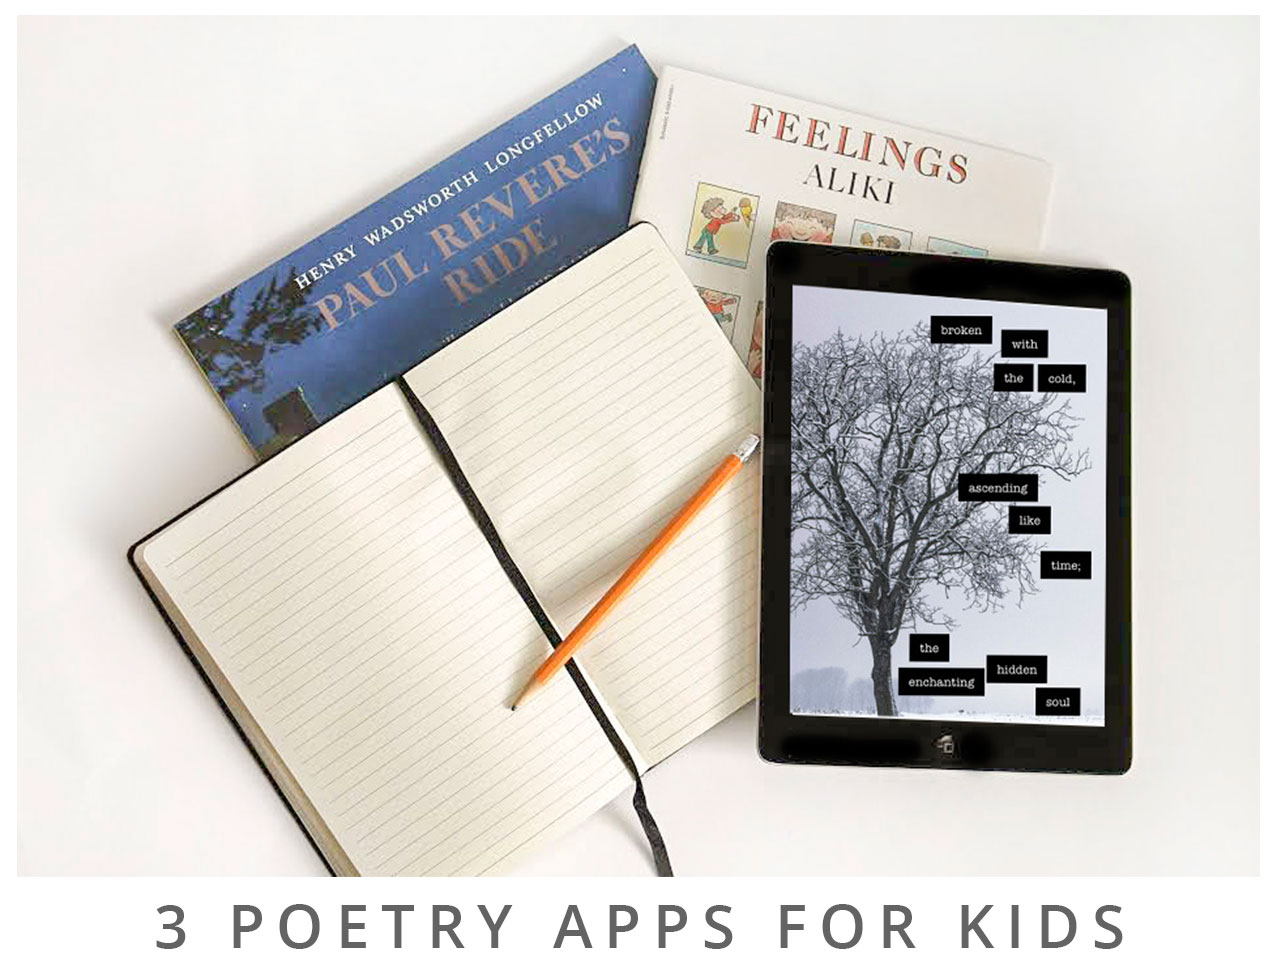 3 Poetry Apps for Kids